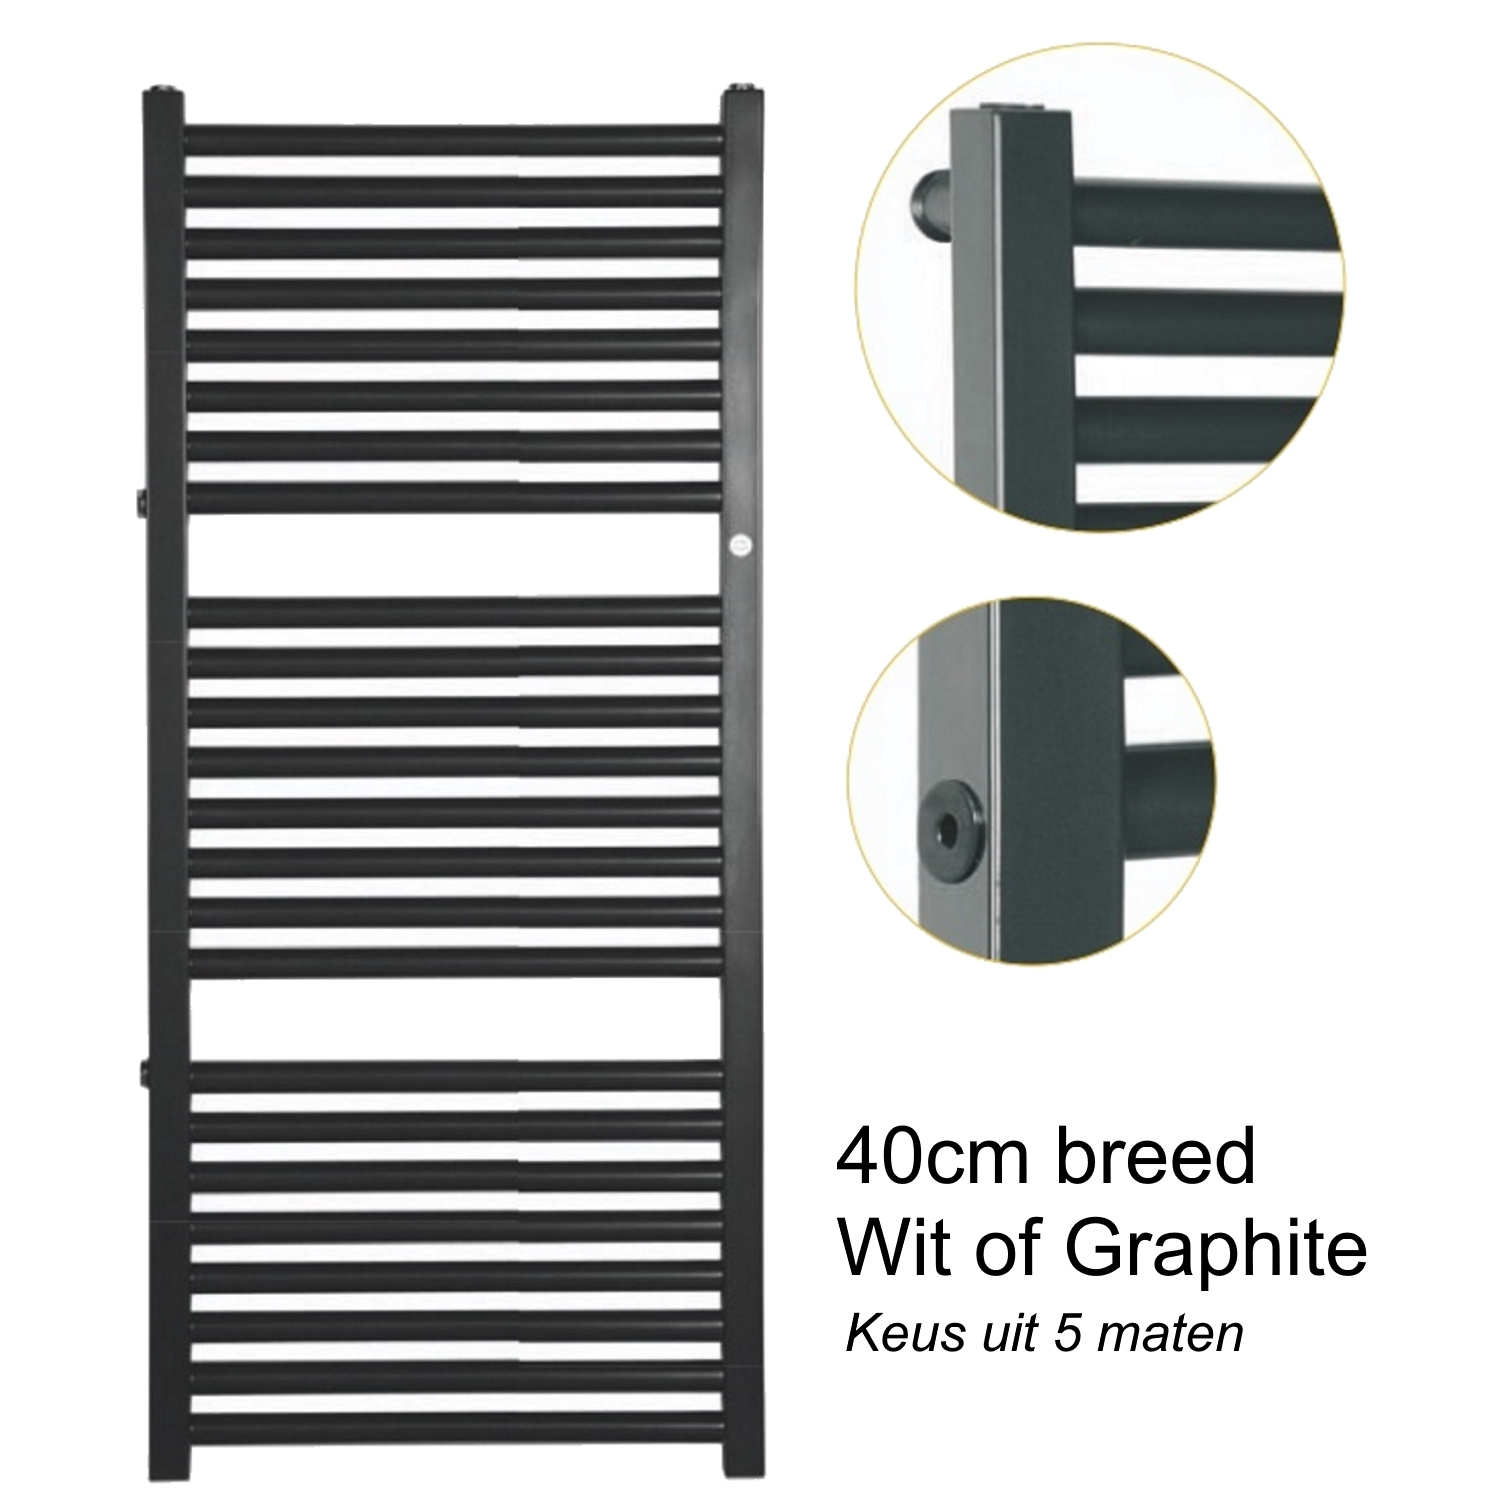 Radiator 40 Breed.Handdoekradiator Ip York Wit Of Graphite 40cm Breed In 5